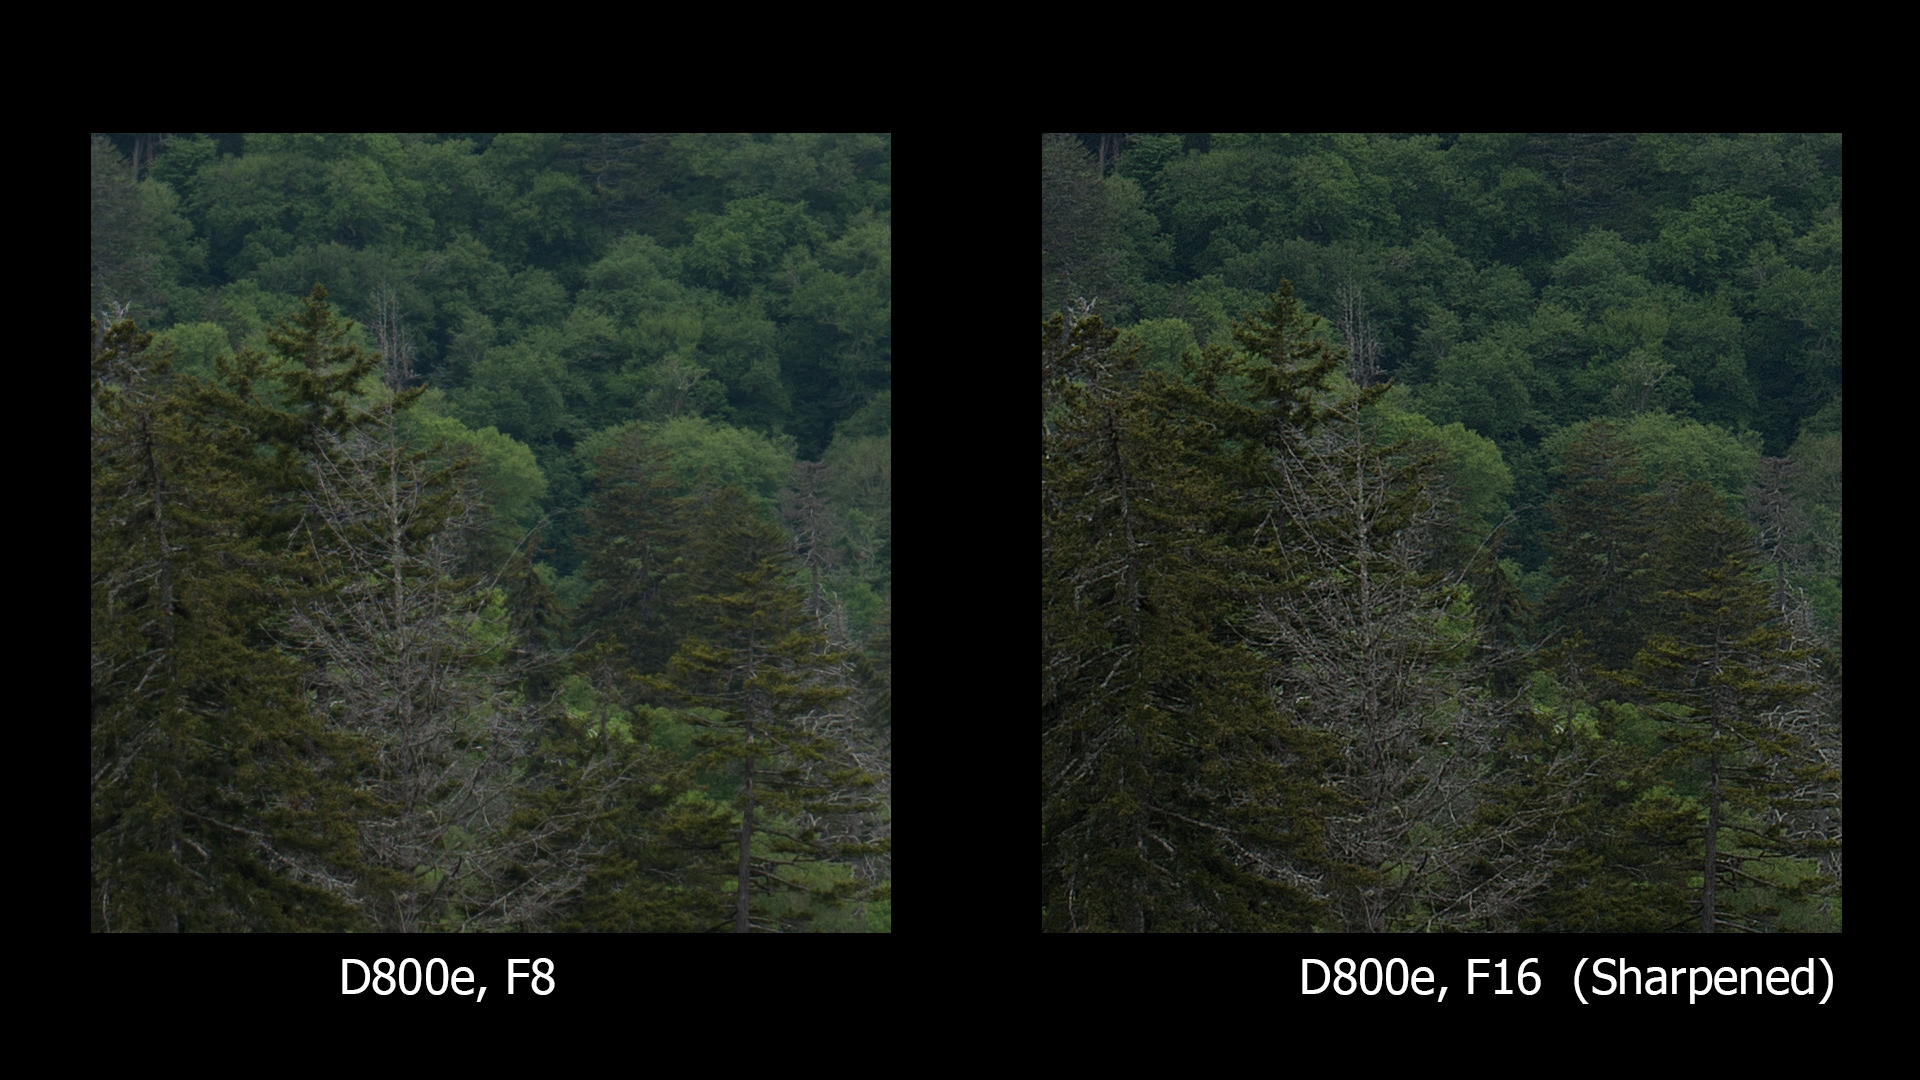 D800e, F8 and F16, ONLY F16 sharpened